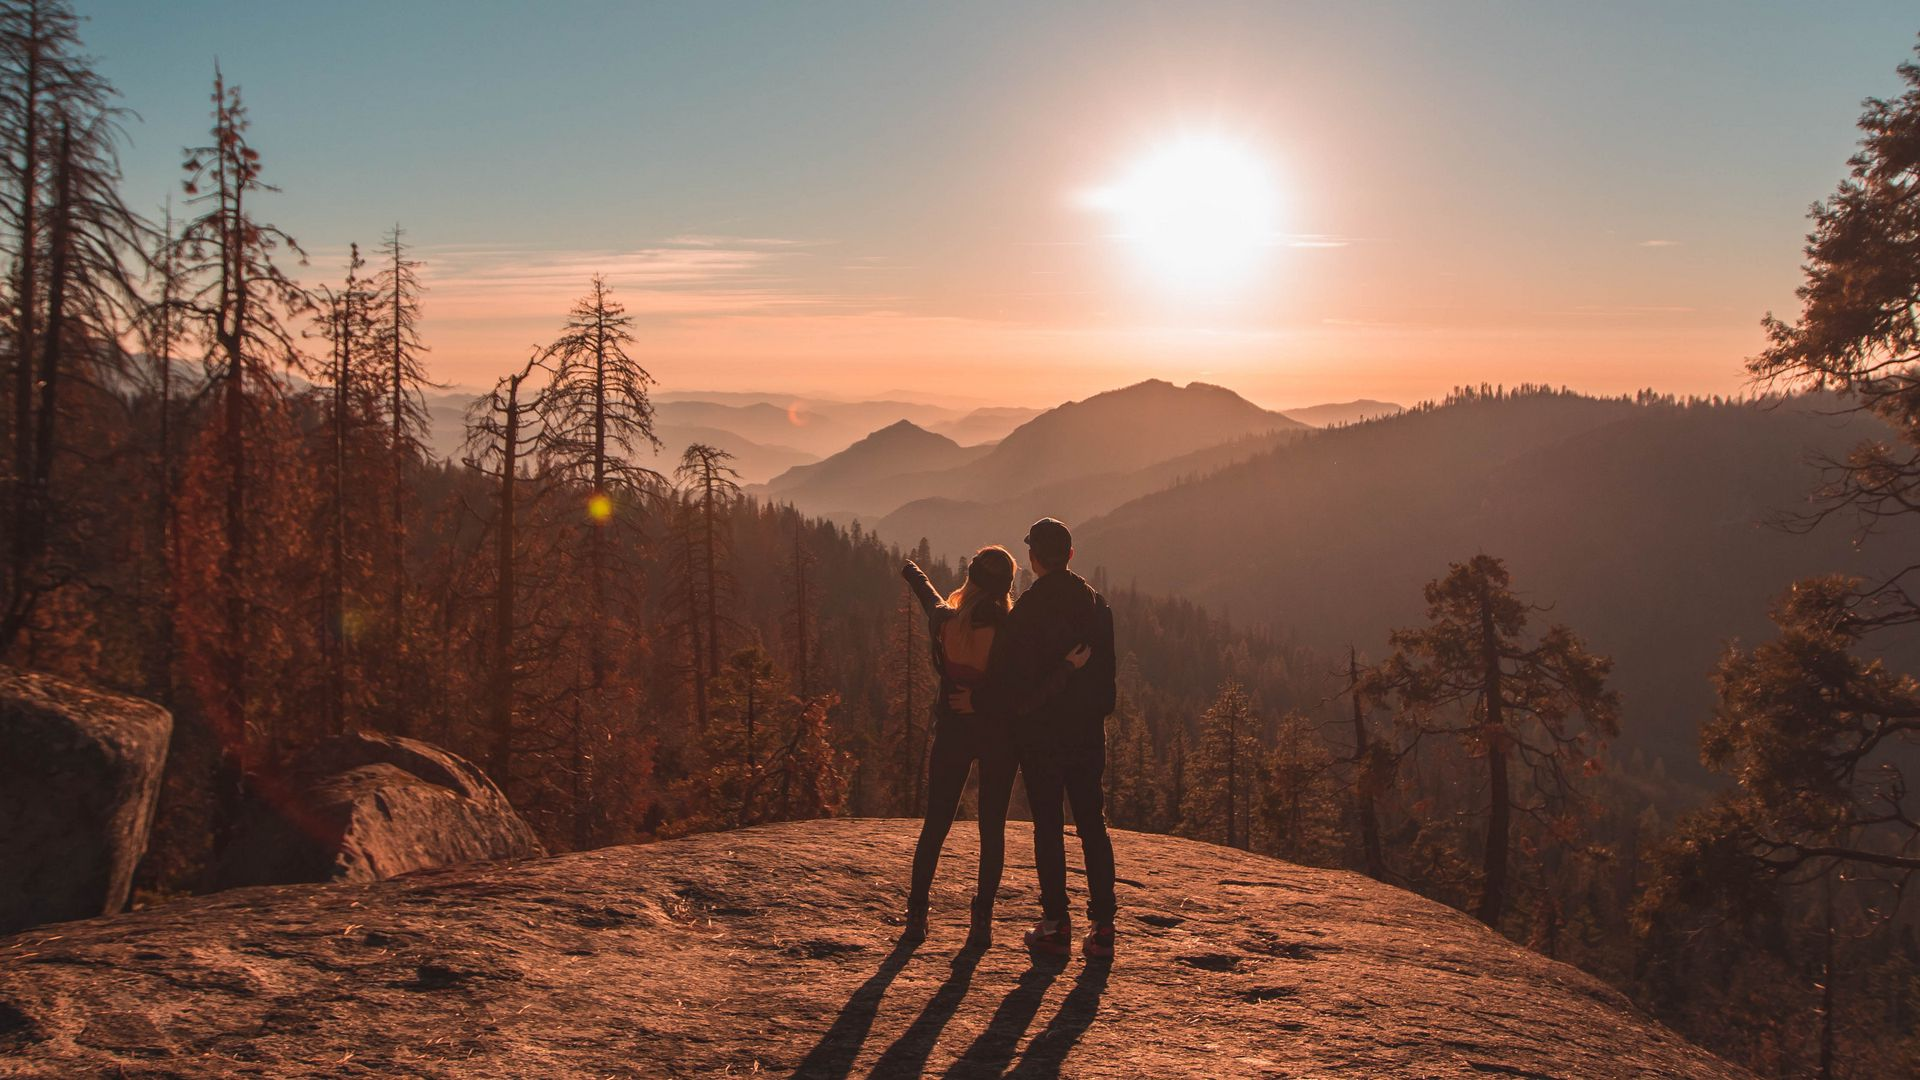 1920x1080 Wallpaper couple, mountains, travel, sunset, sequoia national park, united states